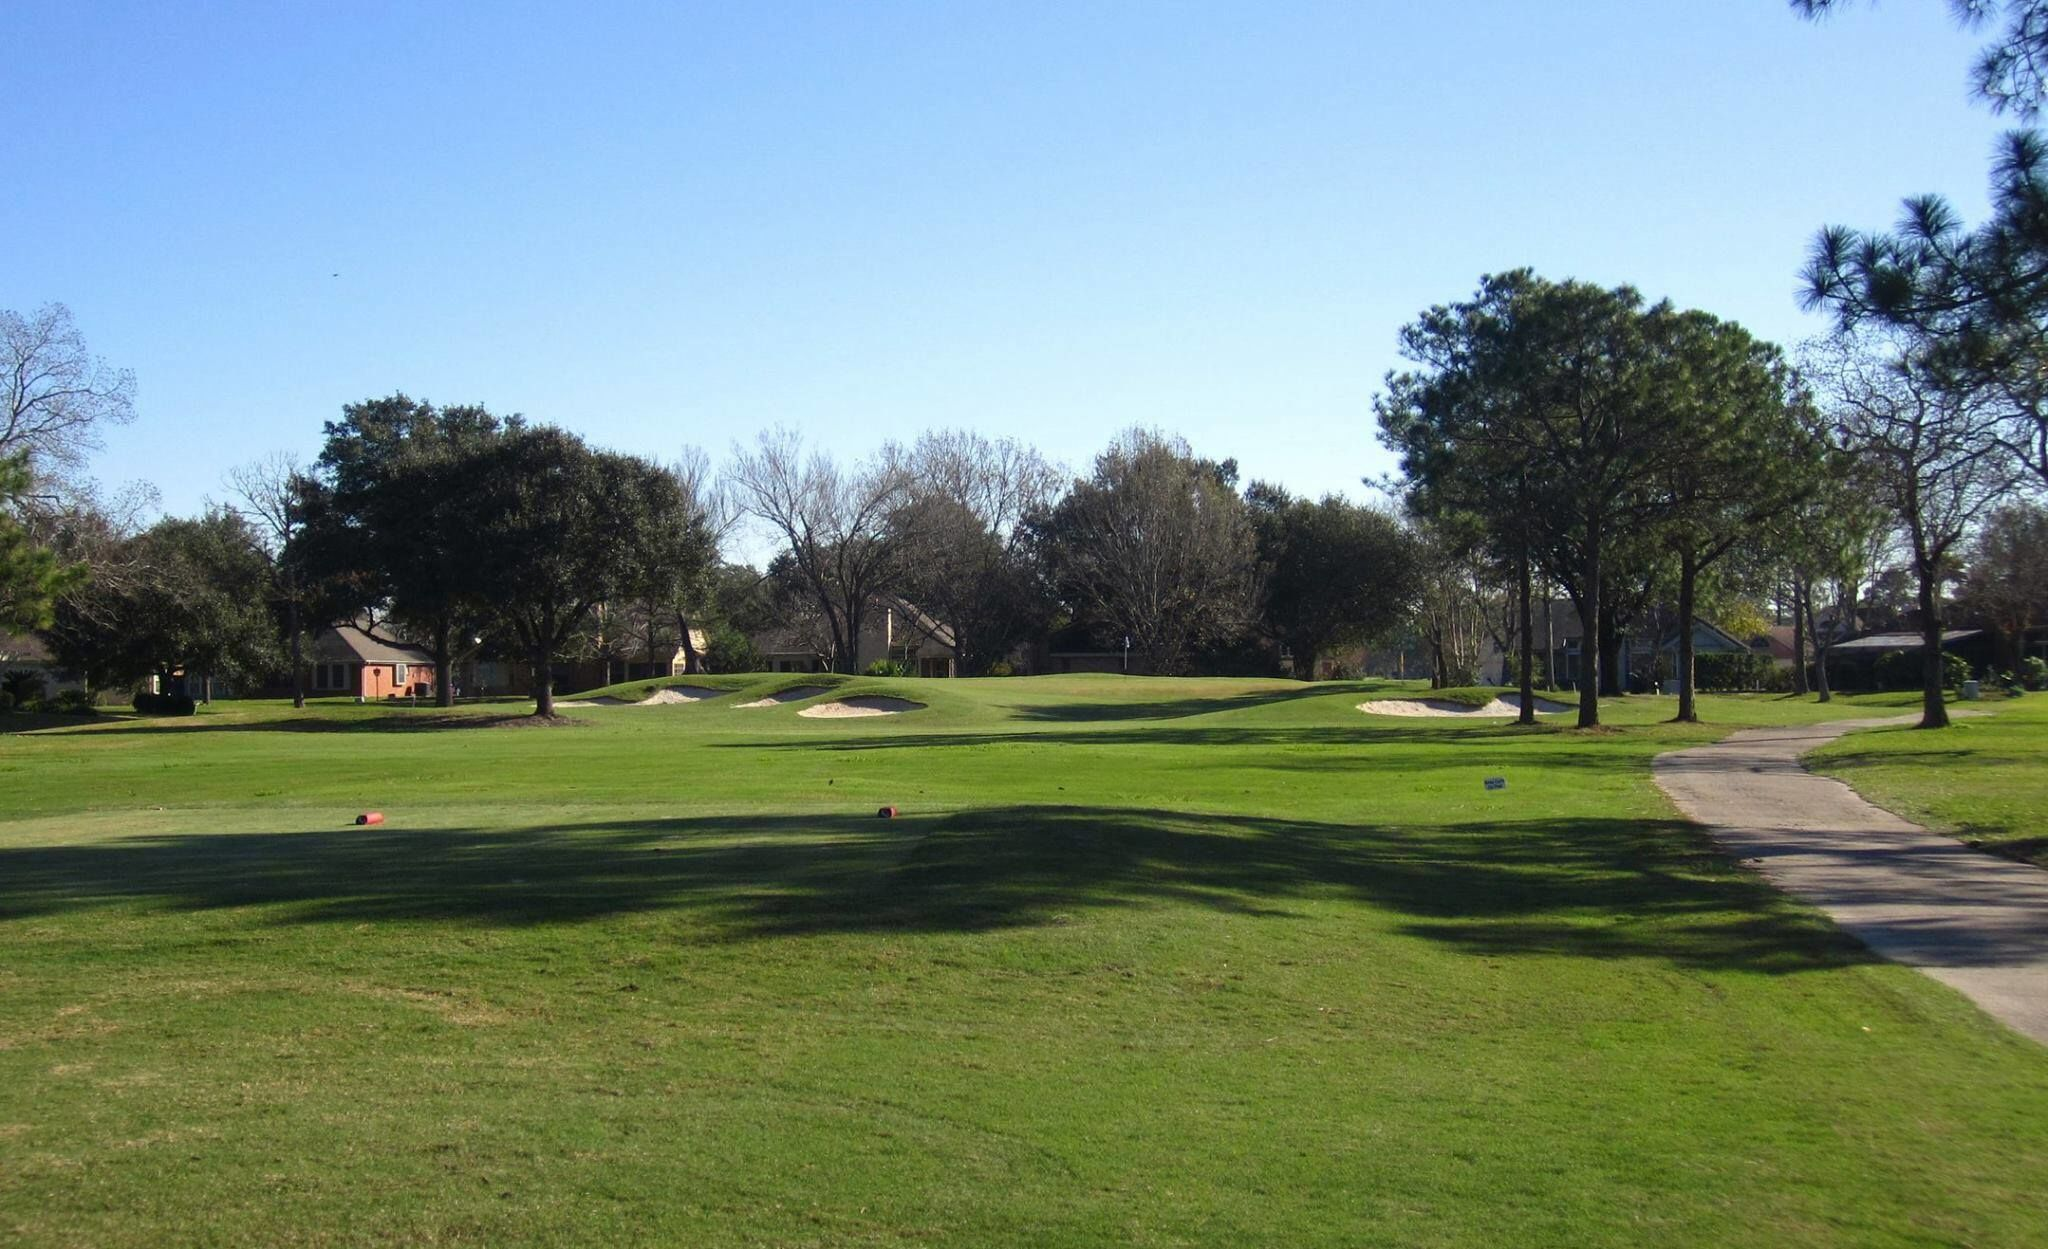 Country place golf club cover picture